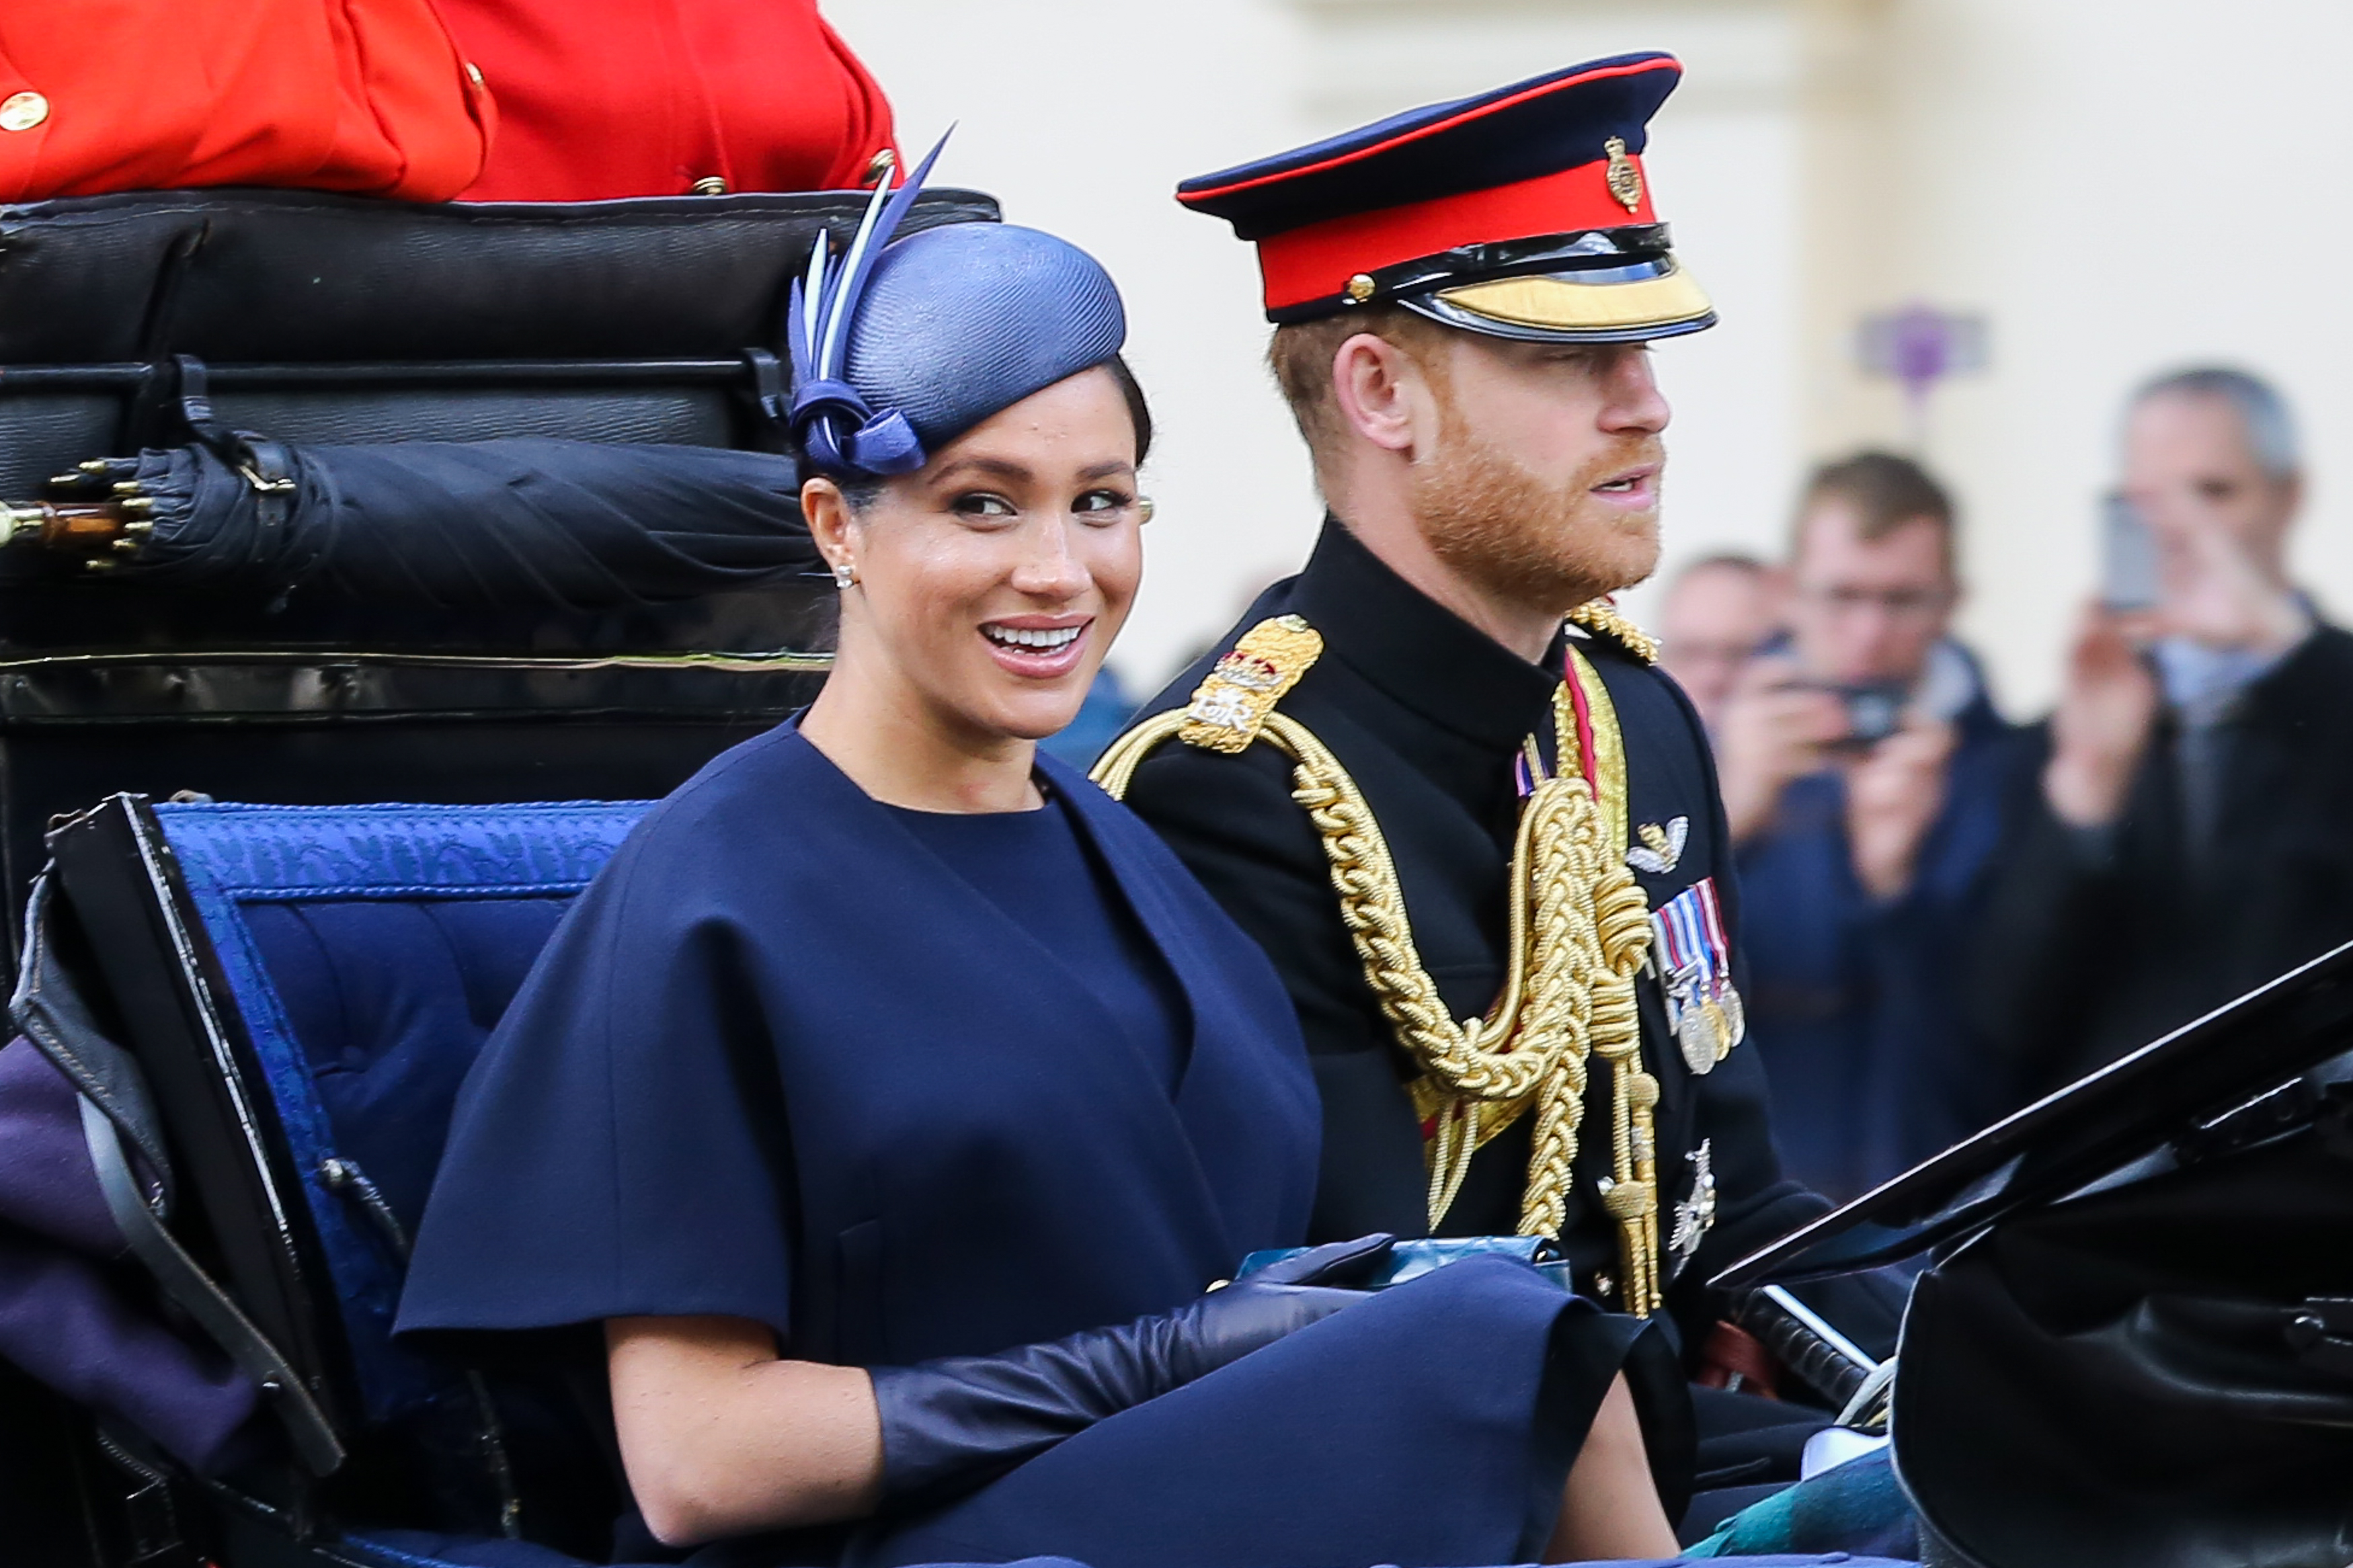 LONDON, UNITED KINGDOM - 2019/06/08: Meghan Duchess of Sussex and Prince Harry are seen in a carriage on their way to Buckingham Palace after attending the Trooping the Colour ceremony, which marks the 93rd birthday of, Queen Elizabeth II, Britain's longest reigning monarch. (Photo by Dinendra Haria/SOPA Images/LightRocket via Getty Images)